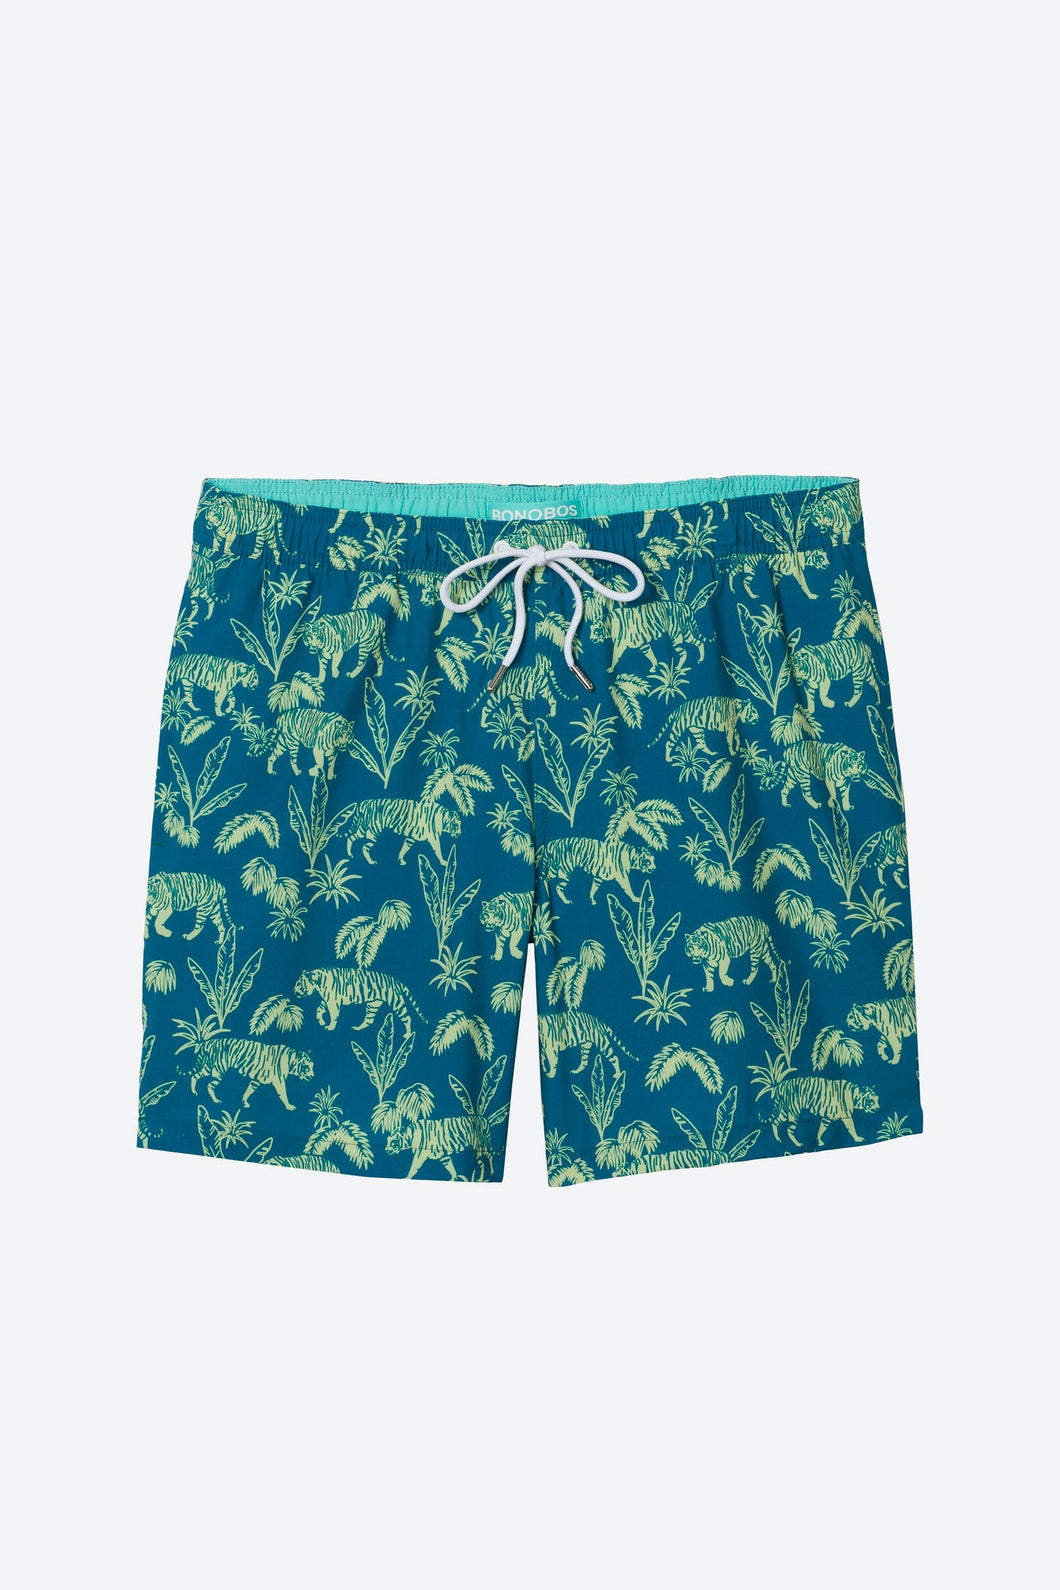 Riviera Recycled Swim Trunks